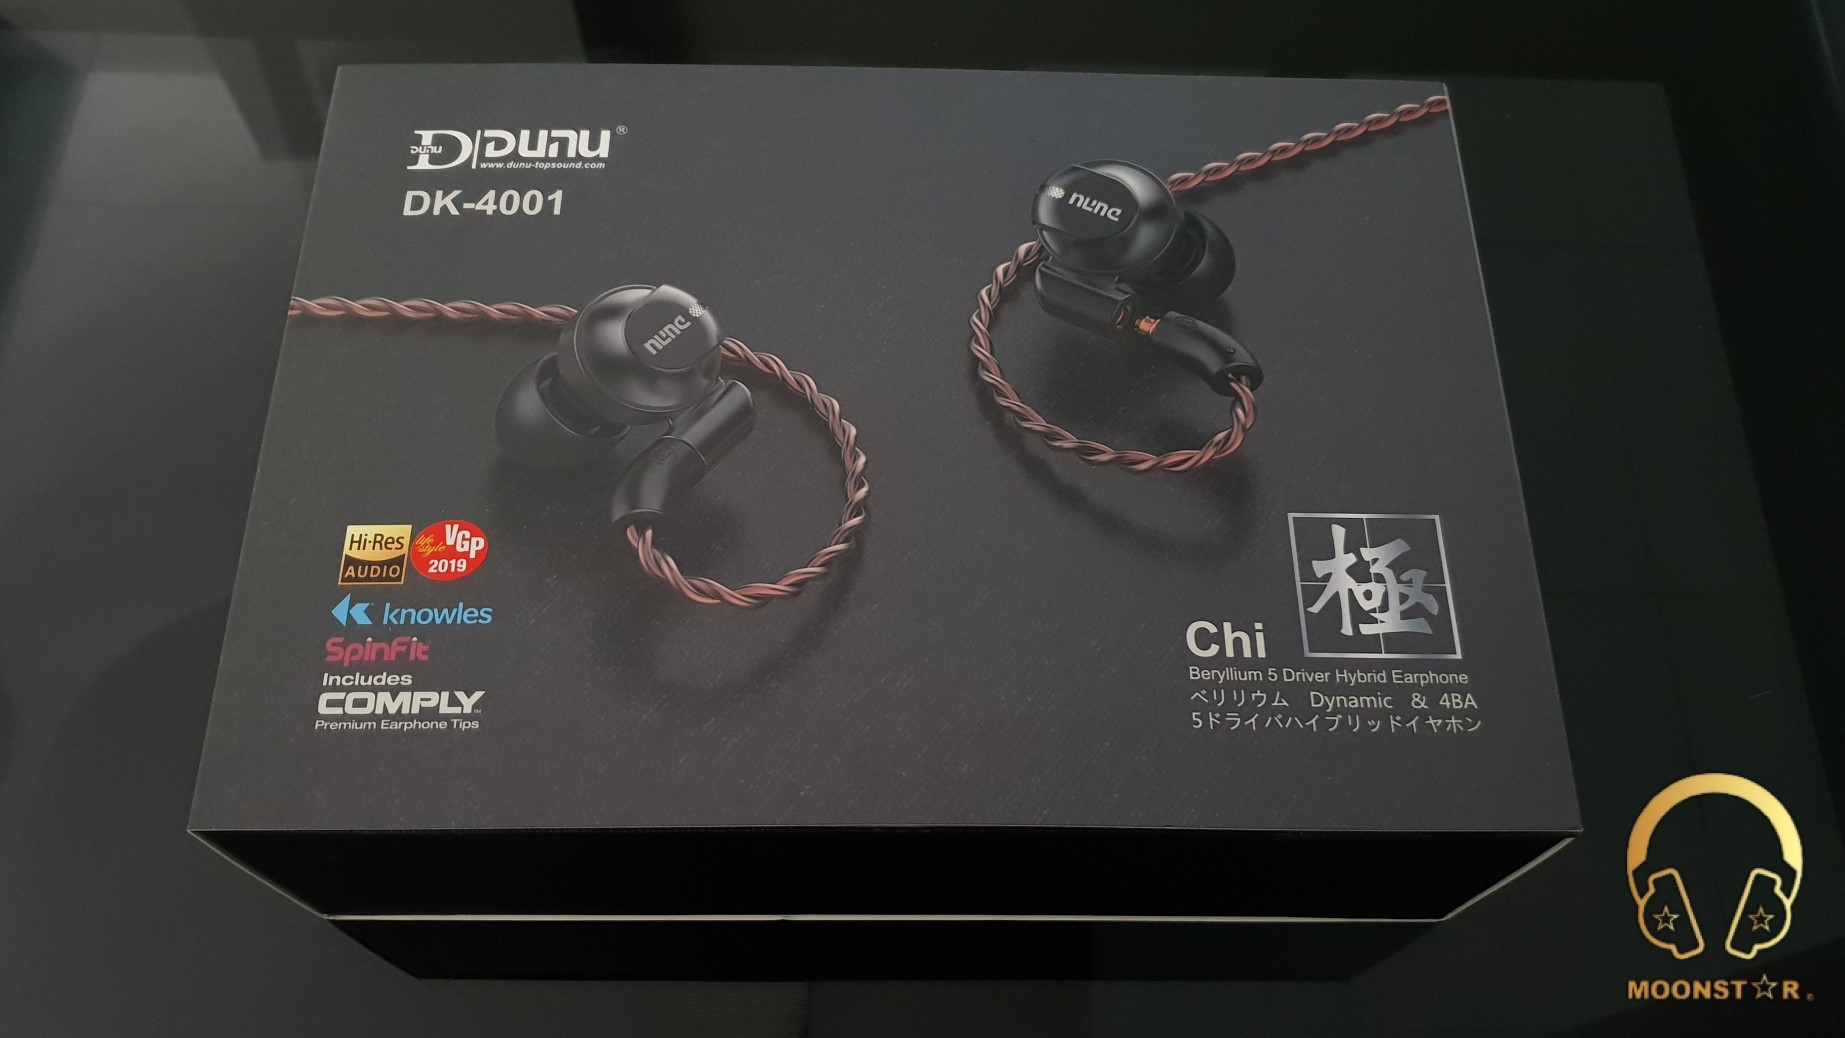 DUNU DK4001 In-Ear Monitor Review